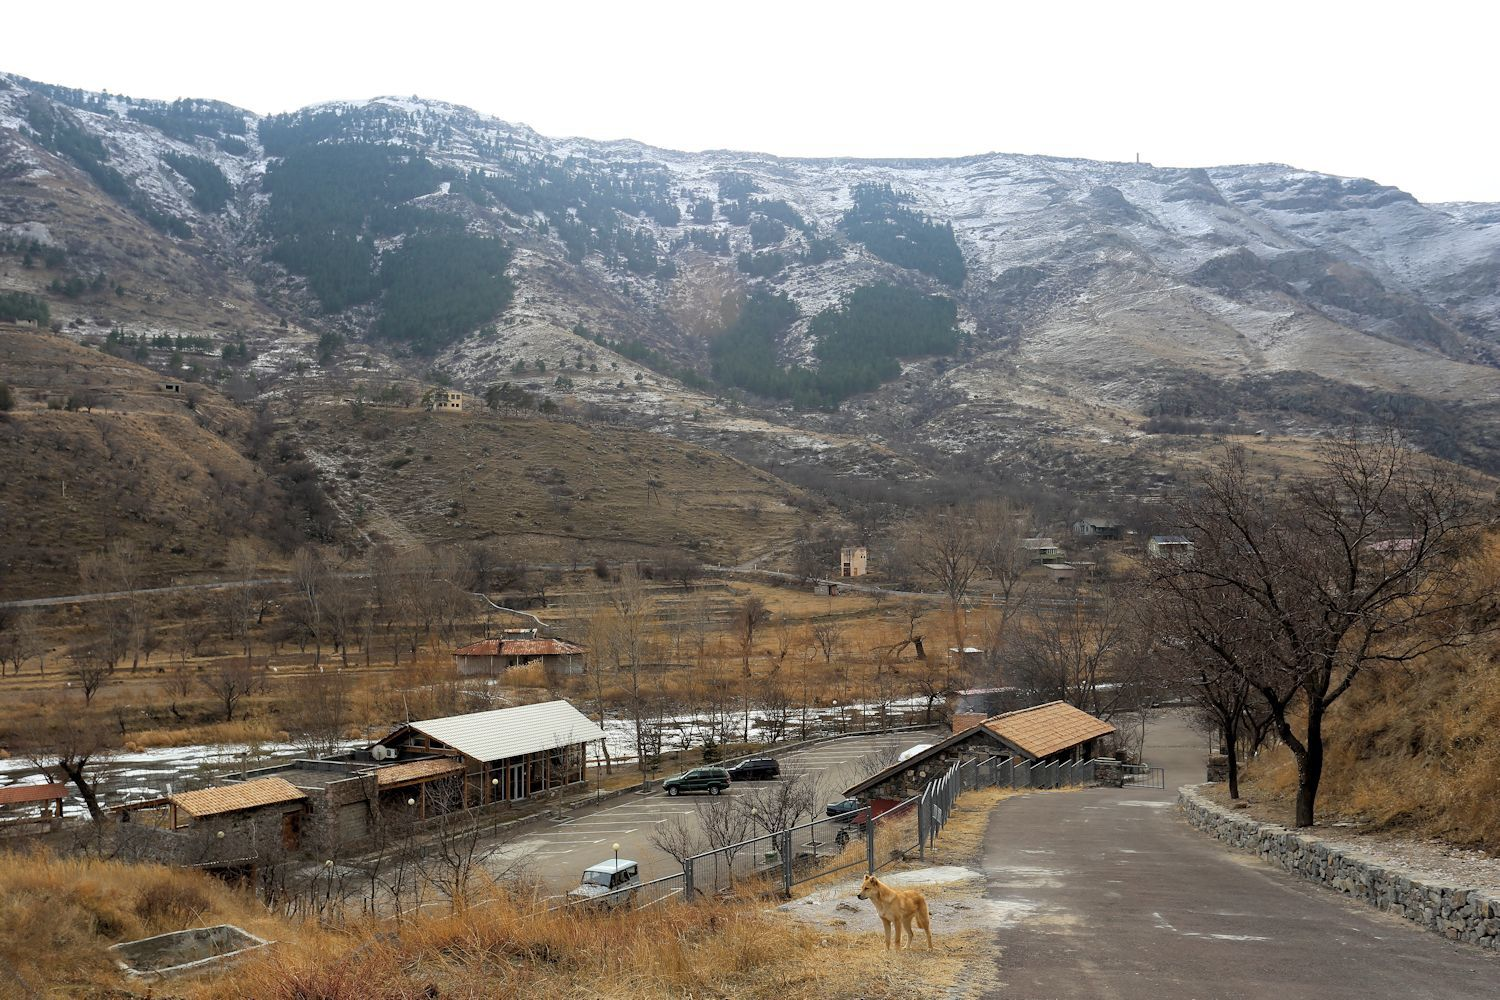 Parking place and a tiket office in Vardzia